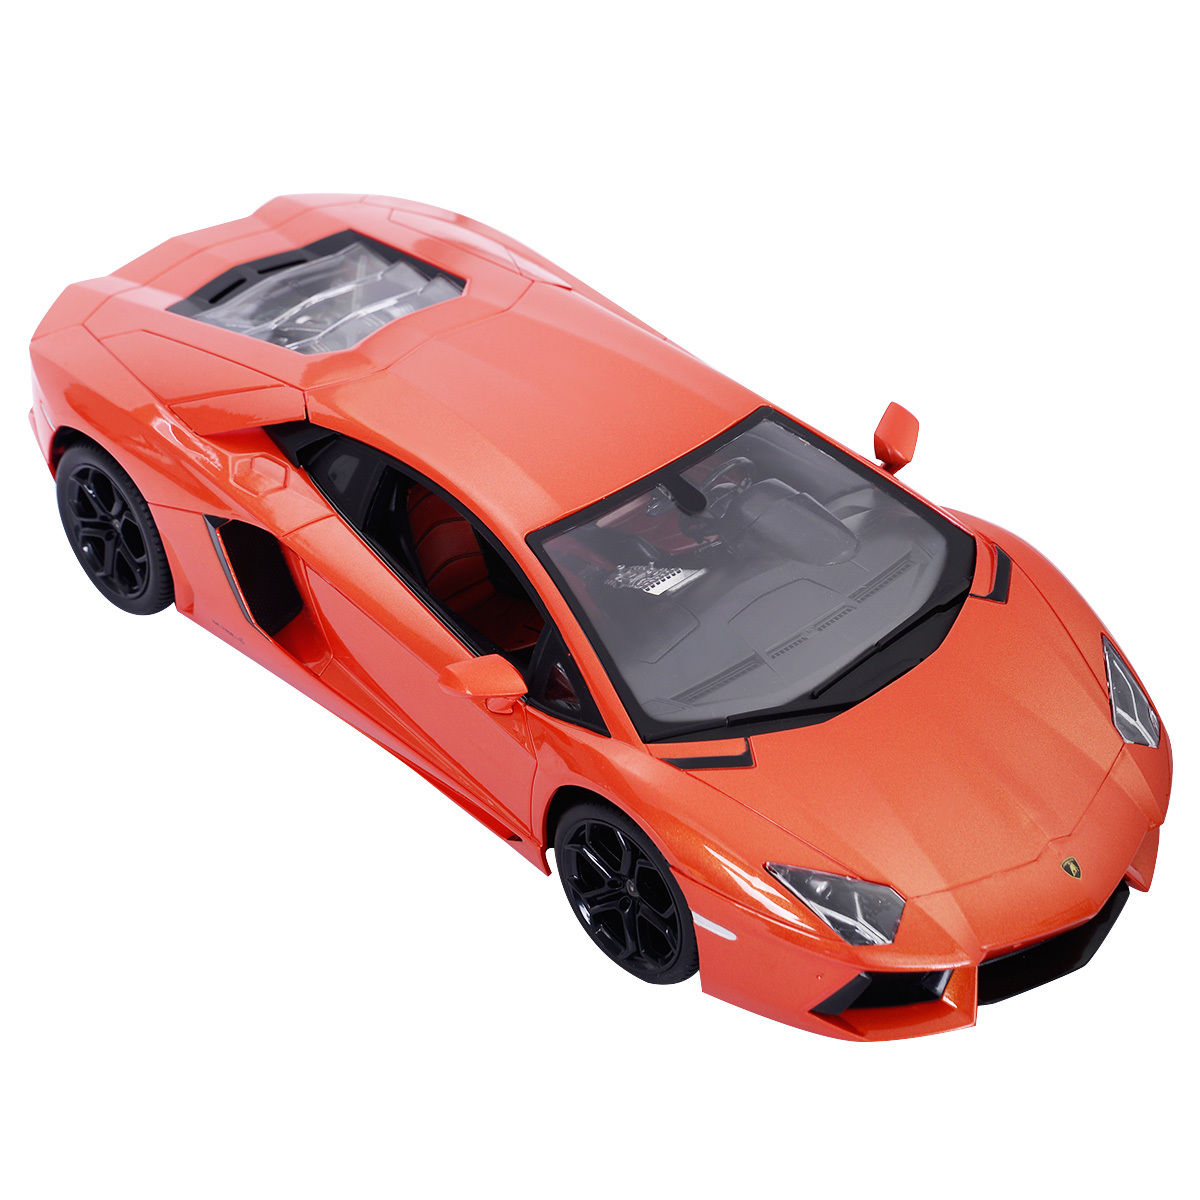 GHP 1:14 Scale Full Function Orange Lamborghini Aventador Remote Controlled Toy Car